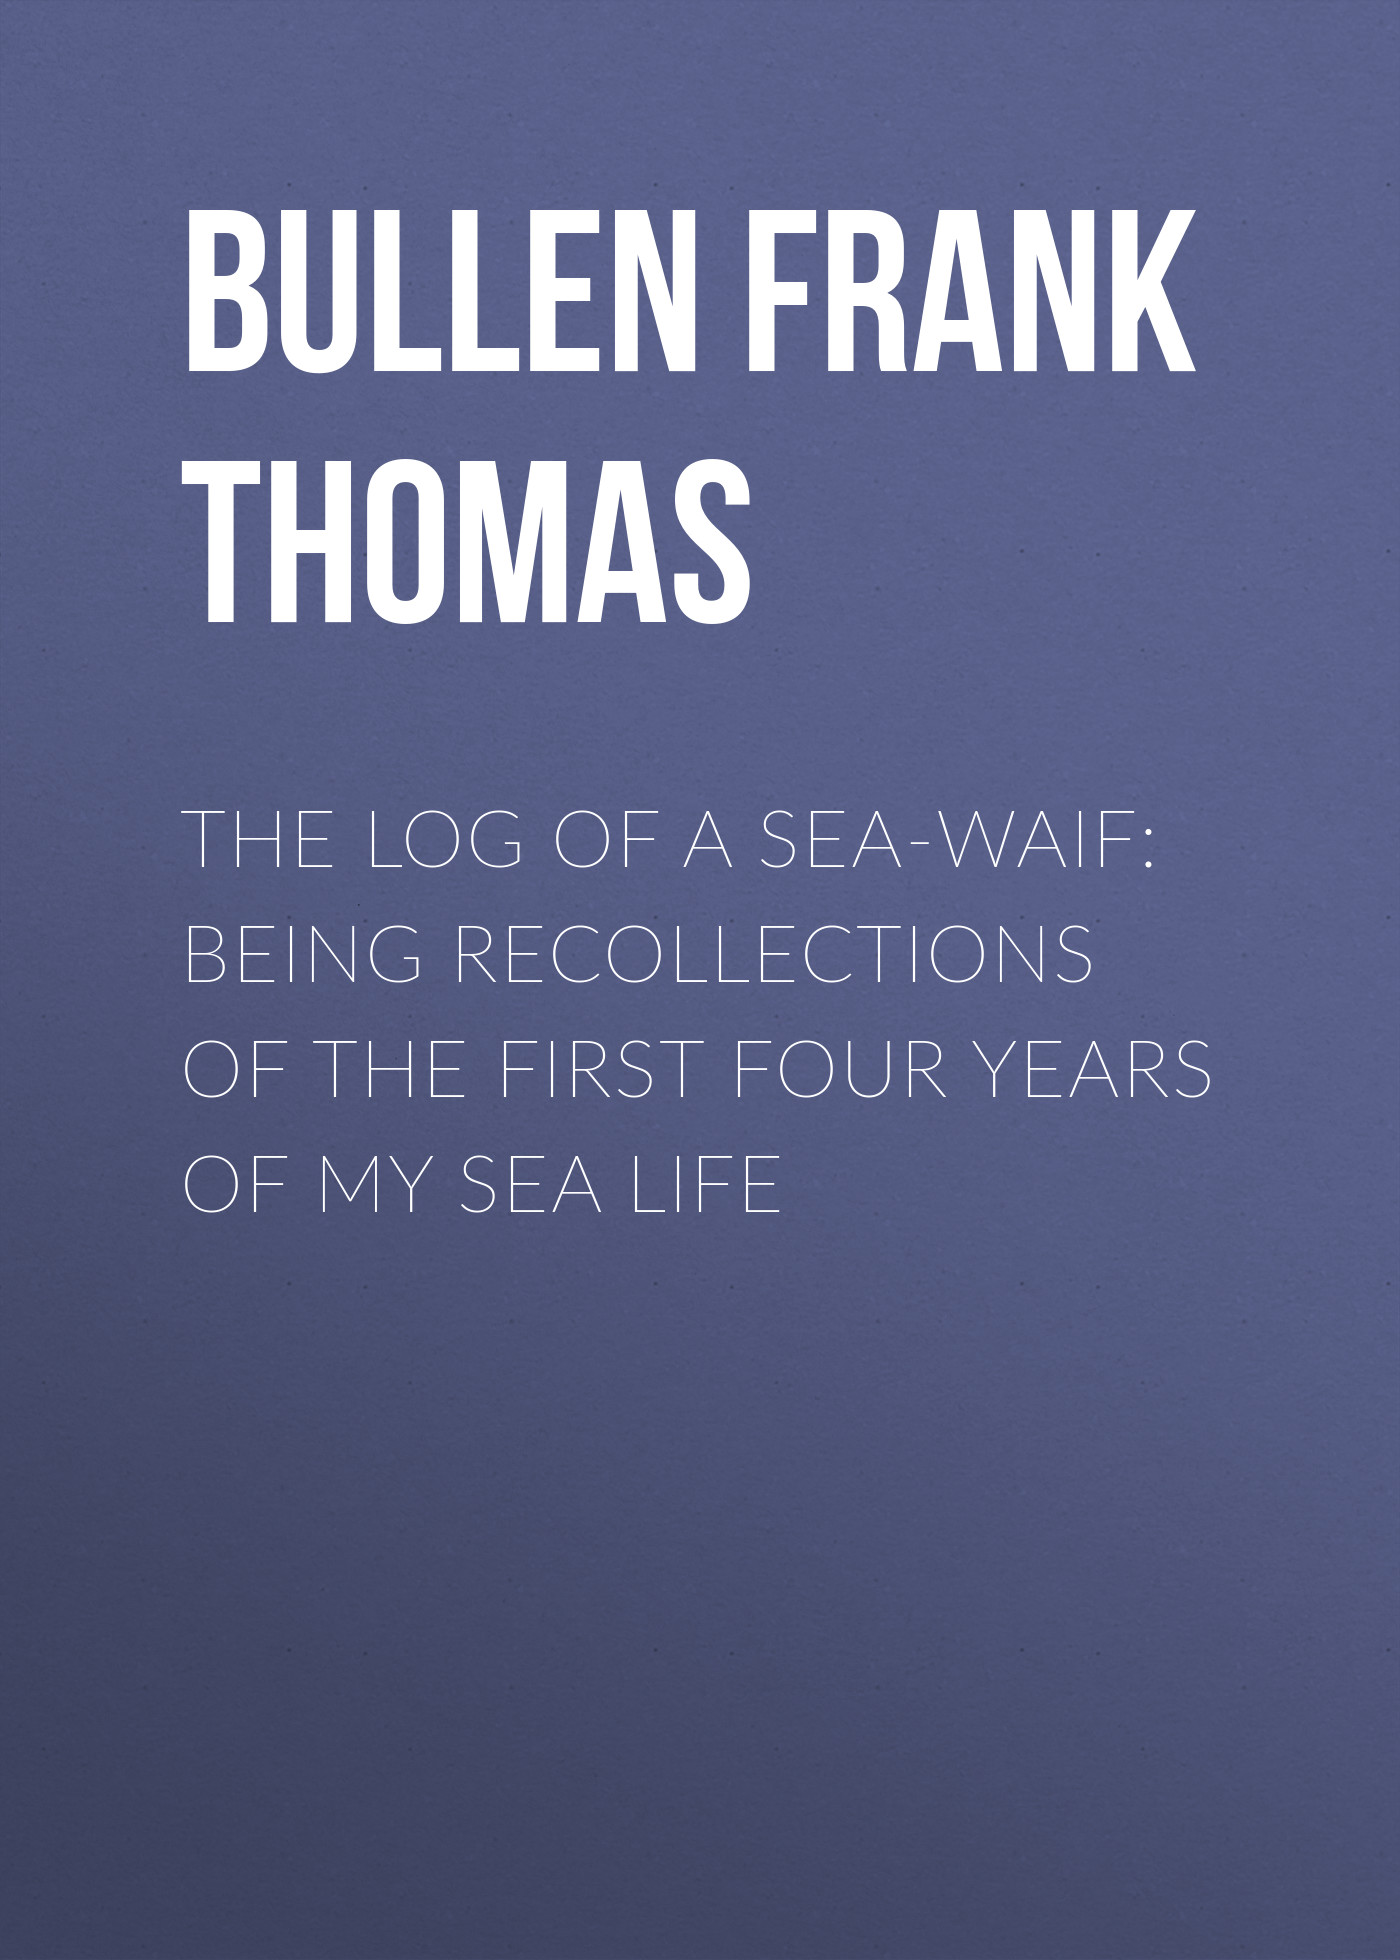 Bullen Frank Thomas The Log of a Sea-Waif: Being Recollections of the First Four Years of My Sea Life chicken of the sea tuna